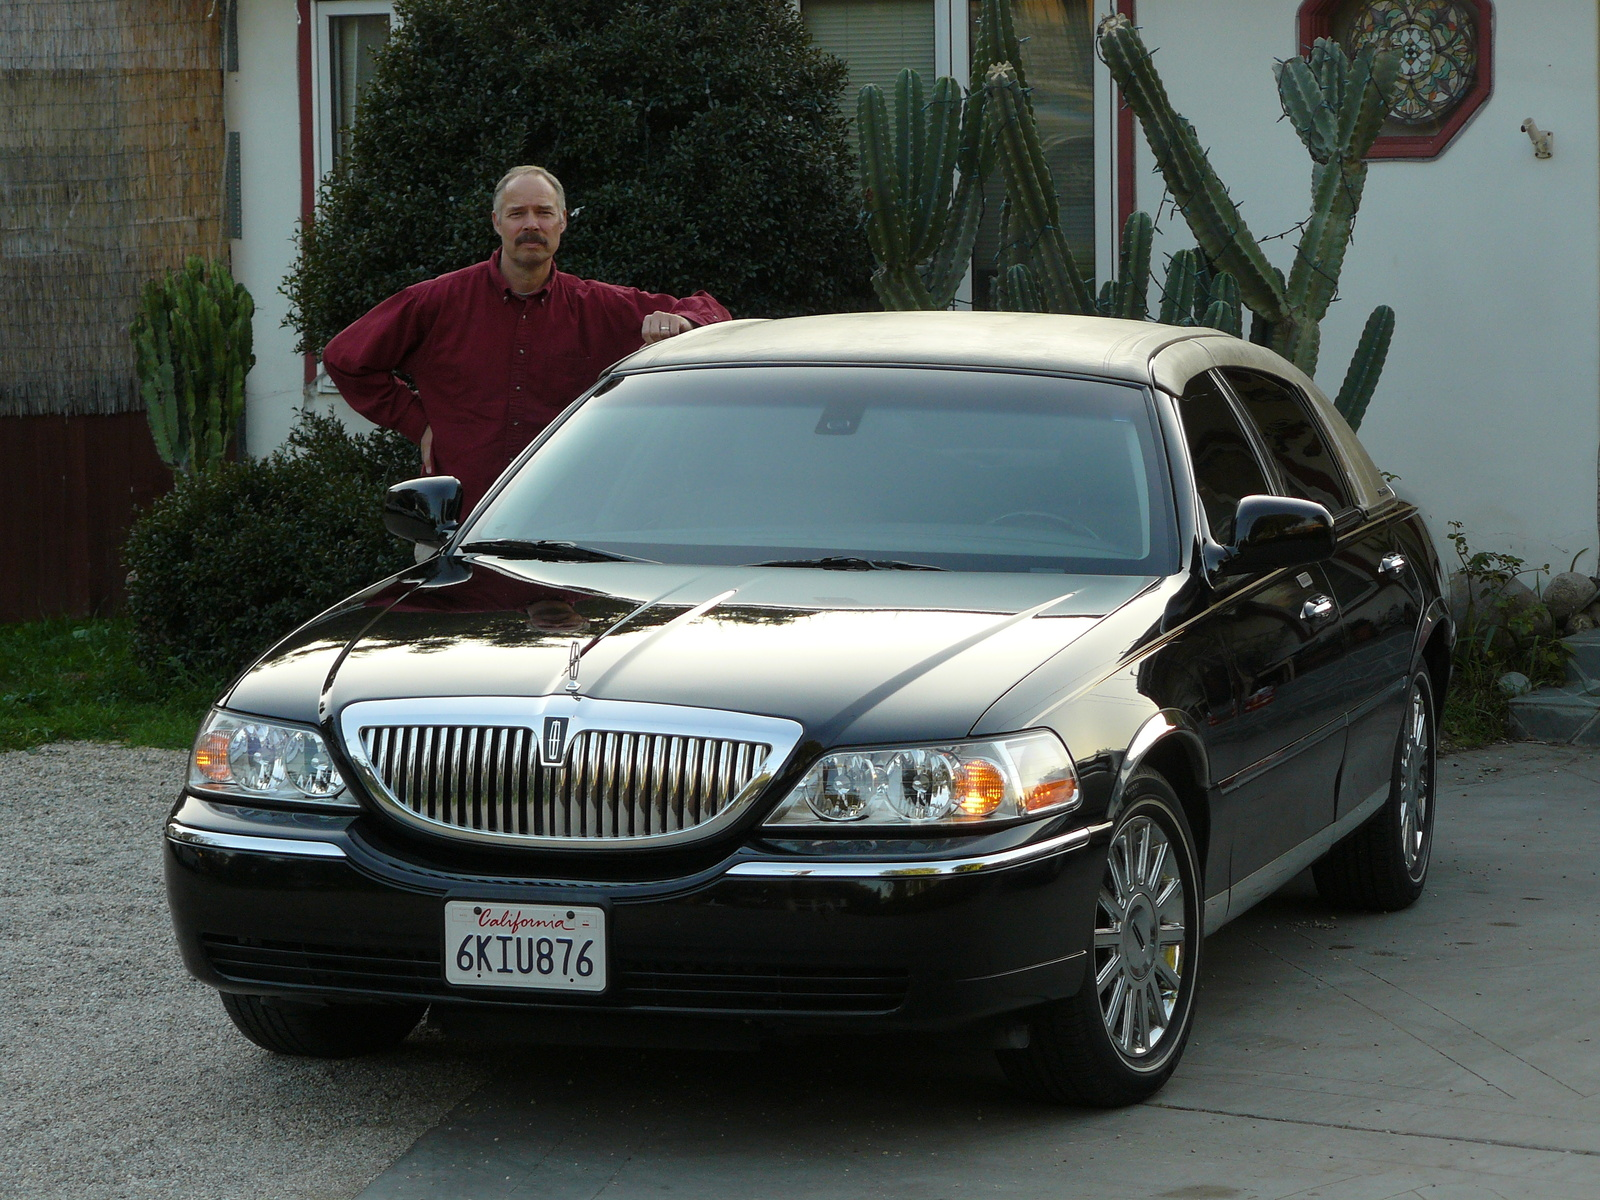 2003 Lincoln Town Car Image 12